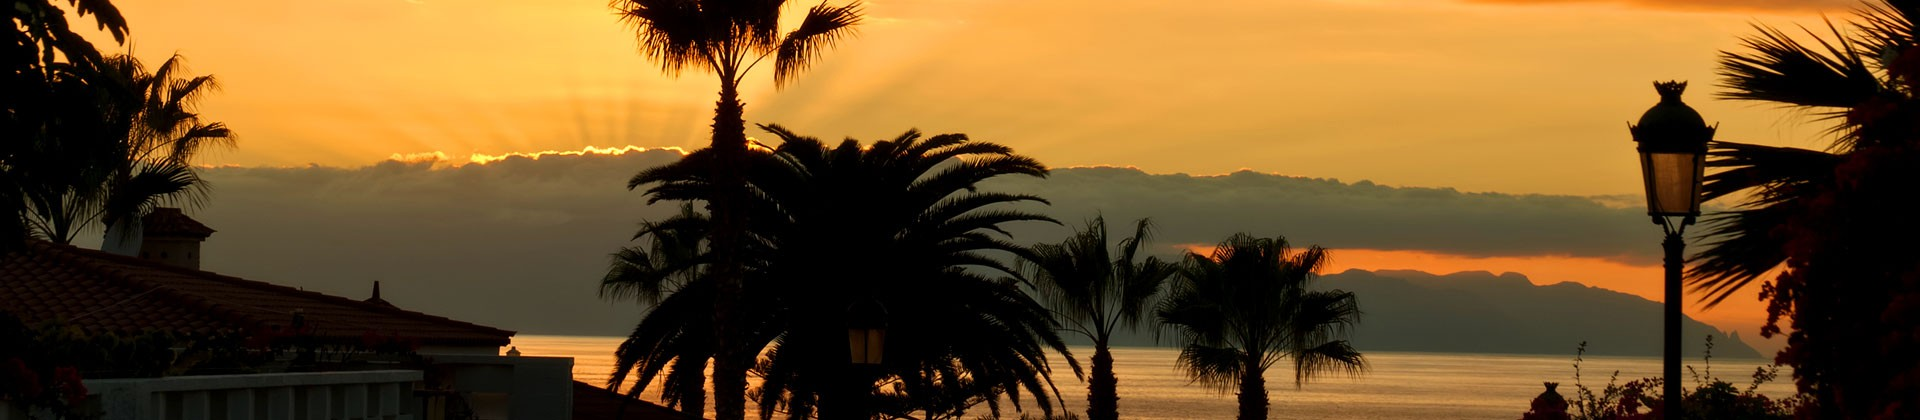 https://www.goodmorningtenerife.com/wp-content/uploads/2014/08/03_slide_sunset_GM_Tenerife-1920x420.jpg